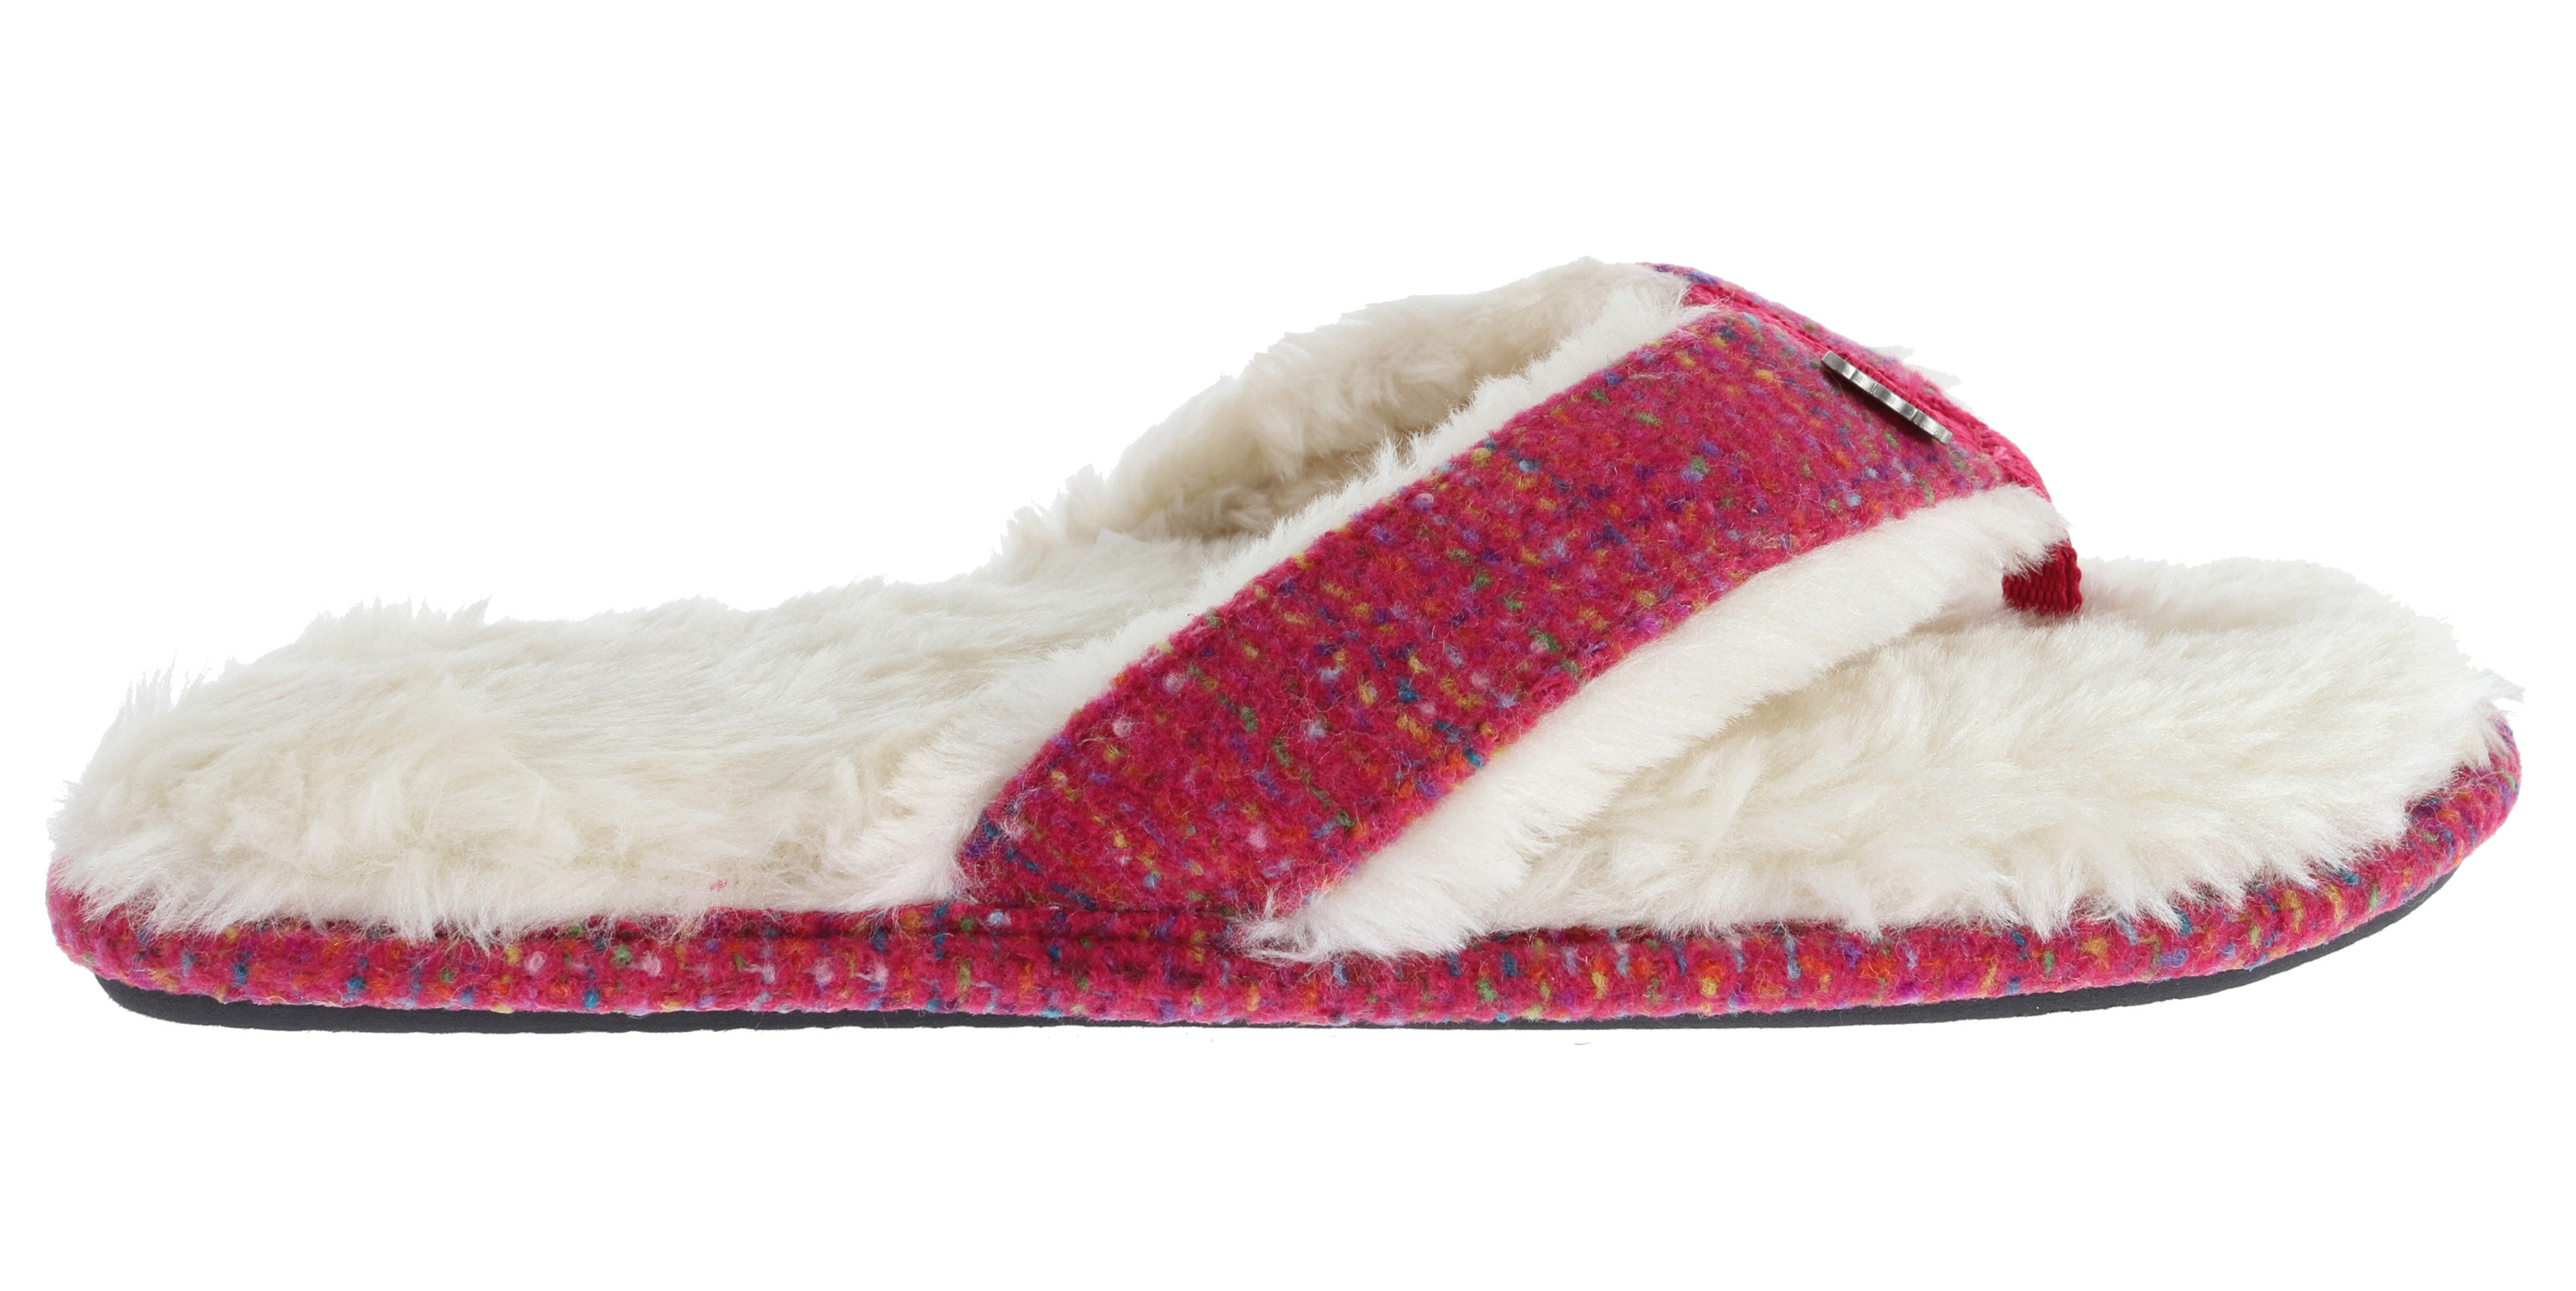 Surf Comfy, cozy, and oh-so-cute, the Reef Snowbird will keep your feet warm all year round. This women's slipper features a textile upper with Reef logo metal hardware. The cozy, padded faux shearling lining on the footbed and strap provides your feet with warmth and comfort. This Reef slipper also has a durable rubber sponge outsole that makes it suitable for indoors or outside. Reef takes thong style to the coziest level ever with the Reef Snowbird.Key Features of the Reef Snowbird Sandals: - $29.95